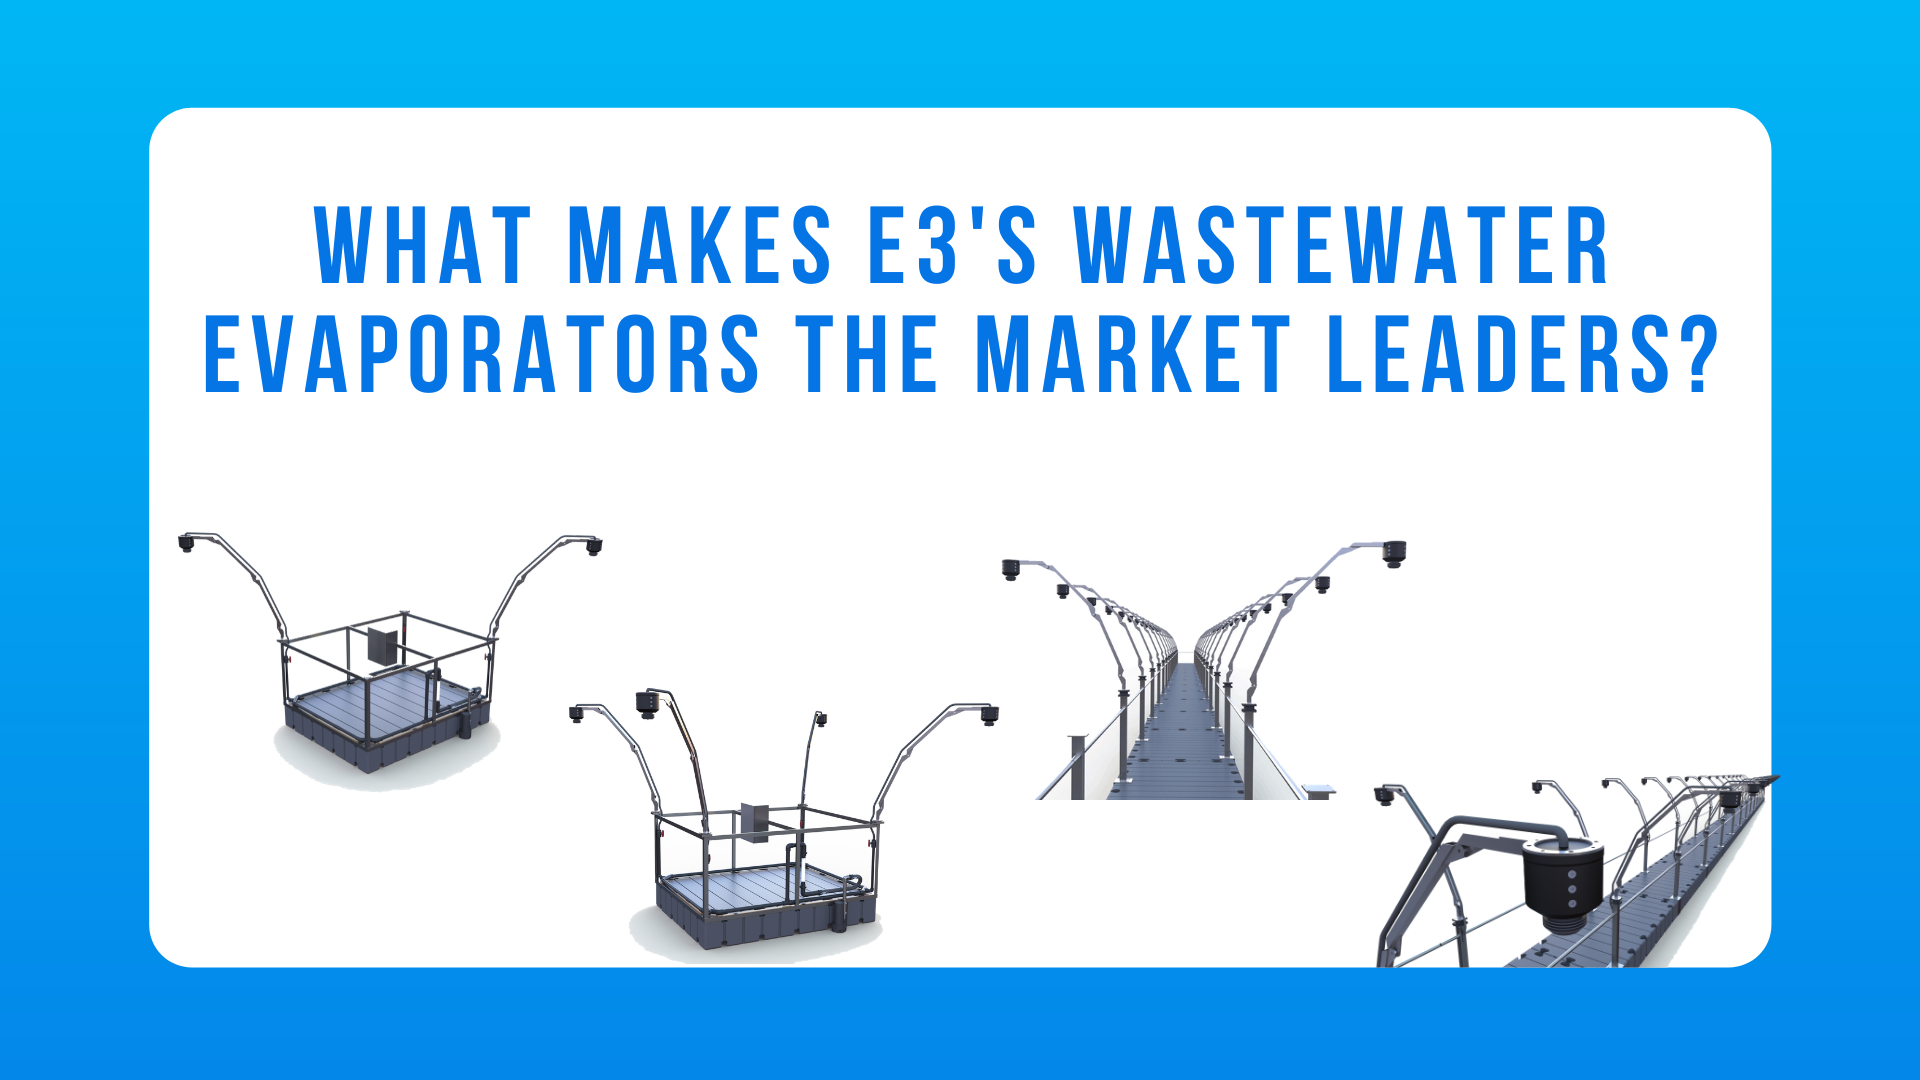 What makes E3's Wastewater Evaporators the market leaders?